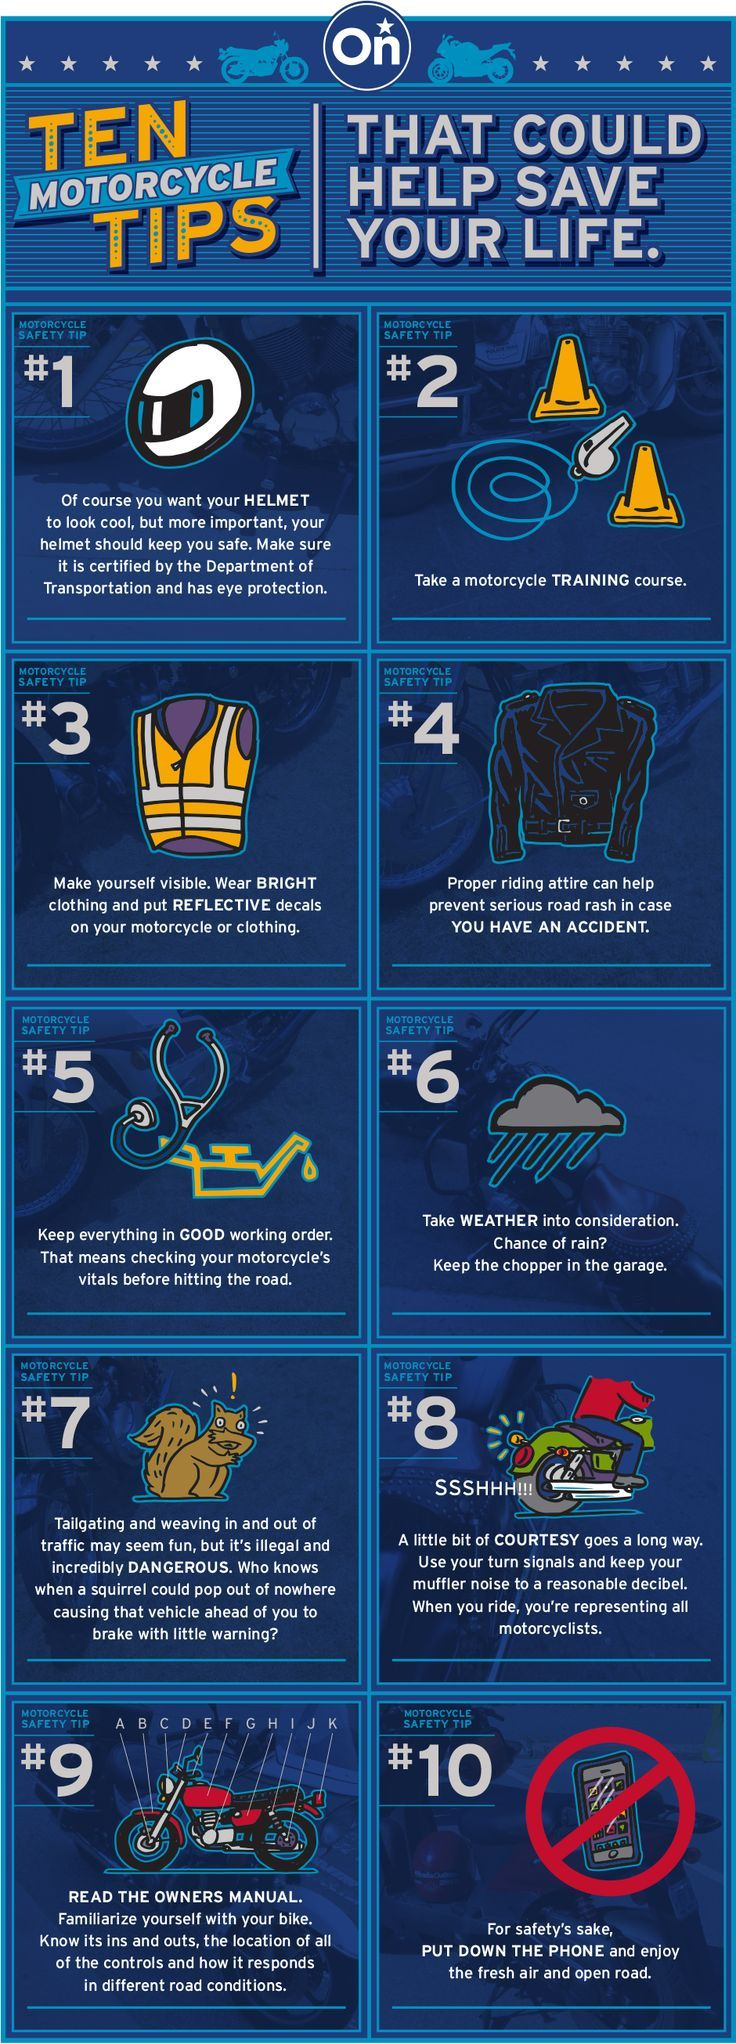 10 motorcycle safety tips that could help save your life! onstarconnections.com   #safety #tips